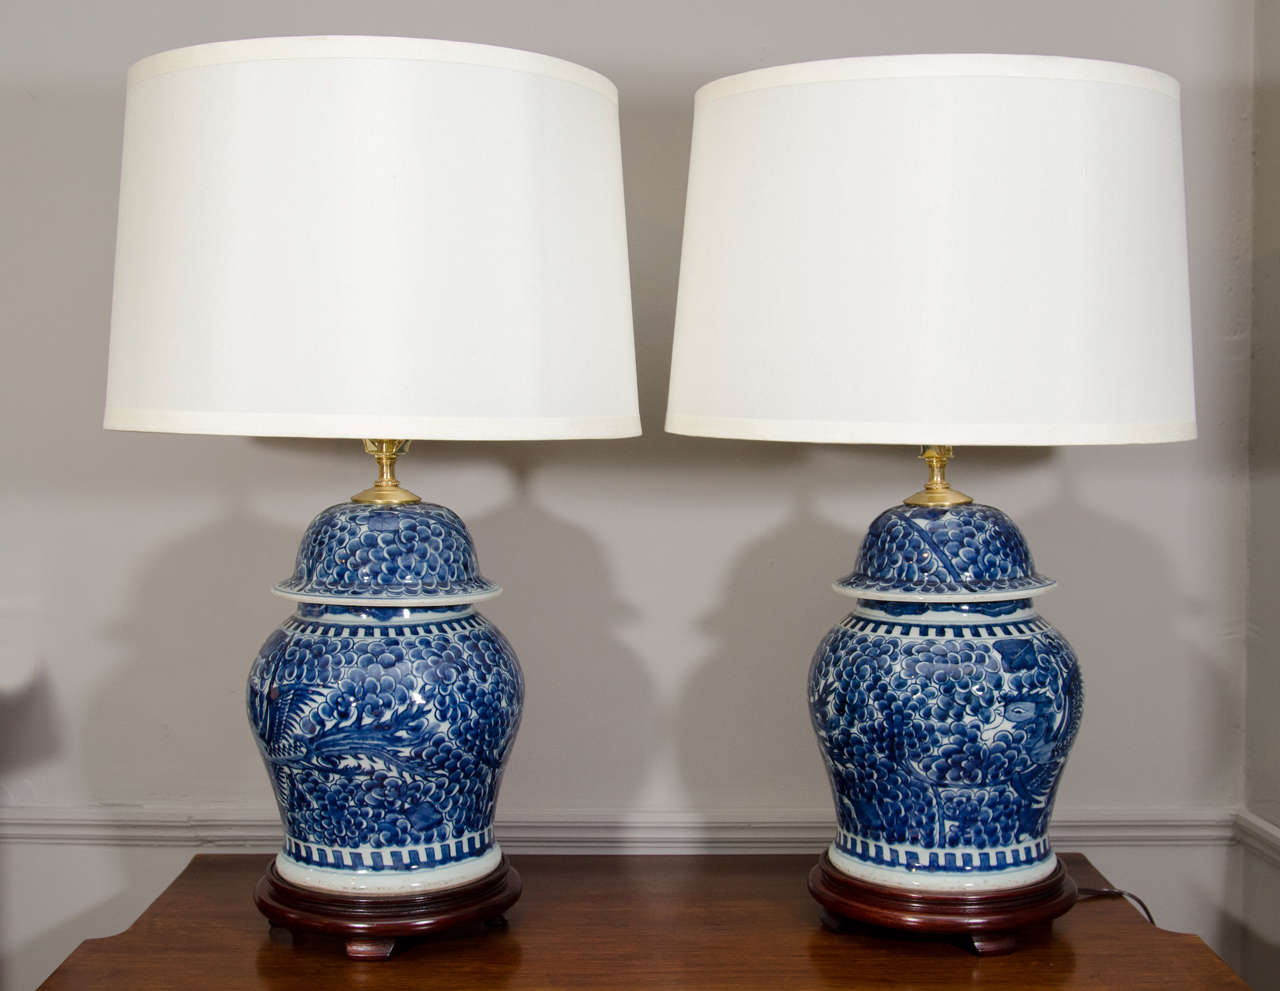 Pair Of Blue And White Porcelain Chinese Temple Jar Lamps at 1stdibs